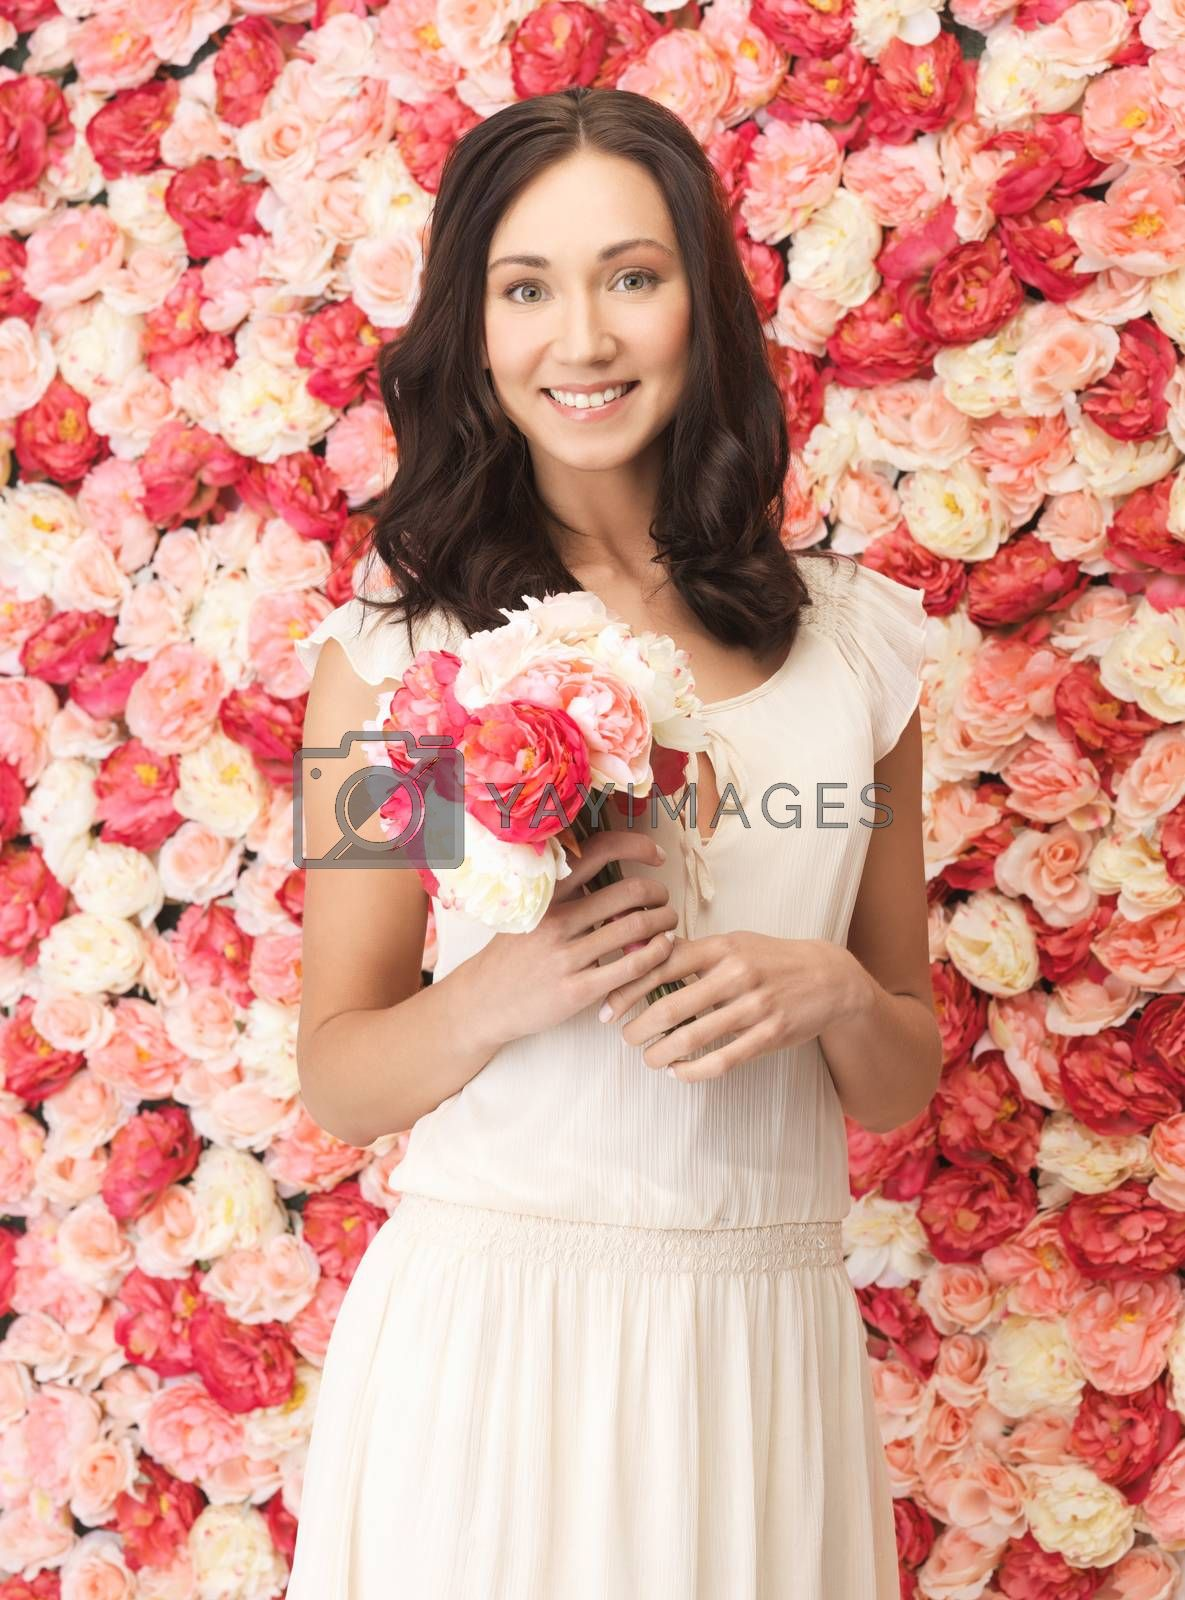 woman with bouquet and background full of roses by dolgachov